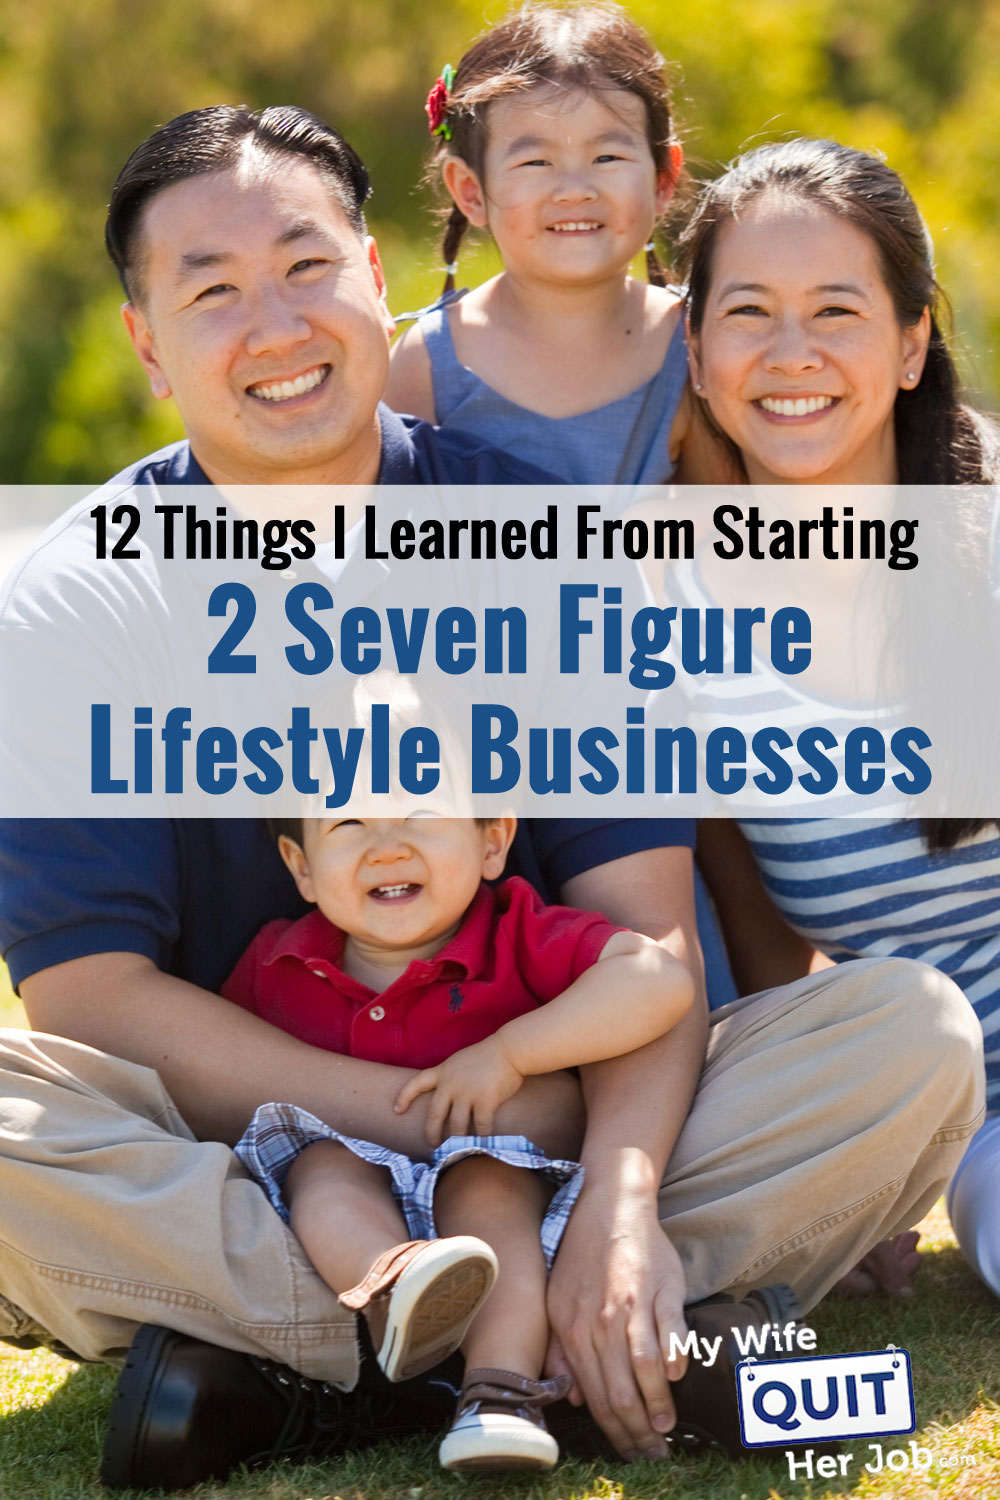 12 Things I Learned From Starting Two 7 Figure Lifestyle Businesses